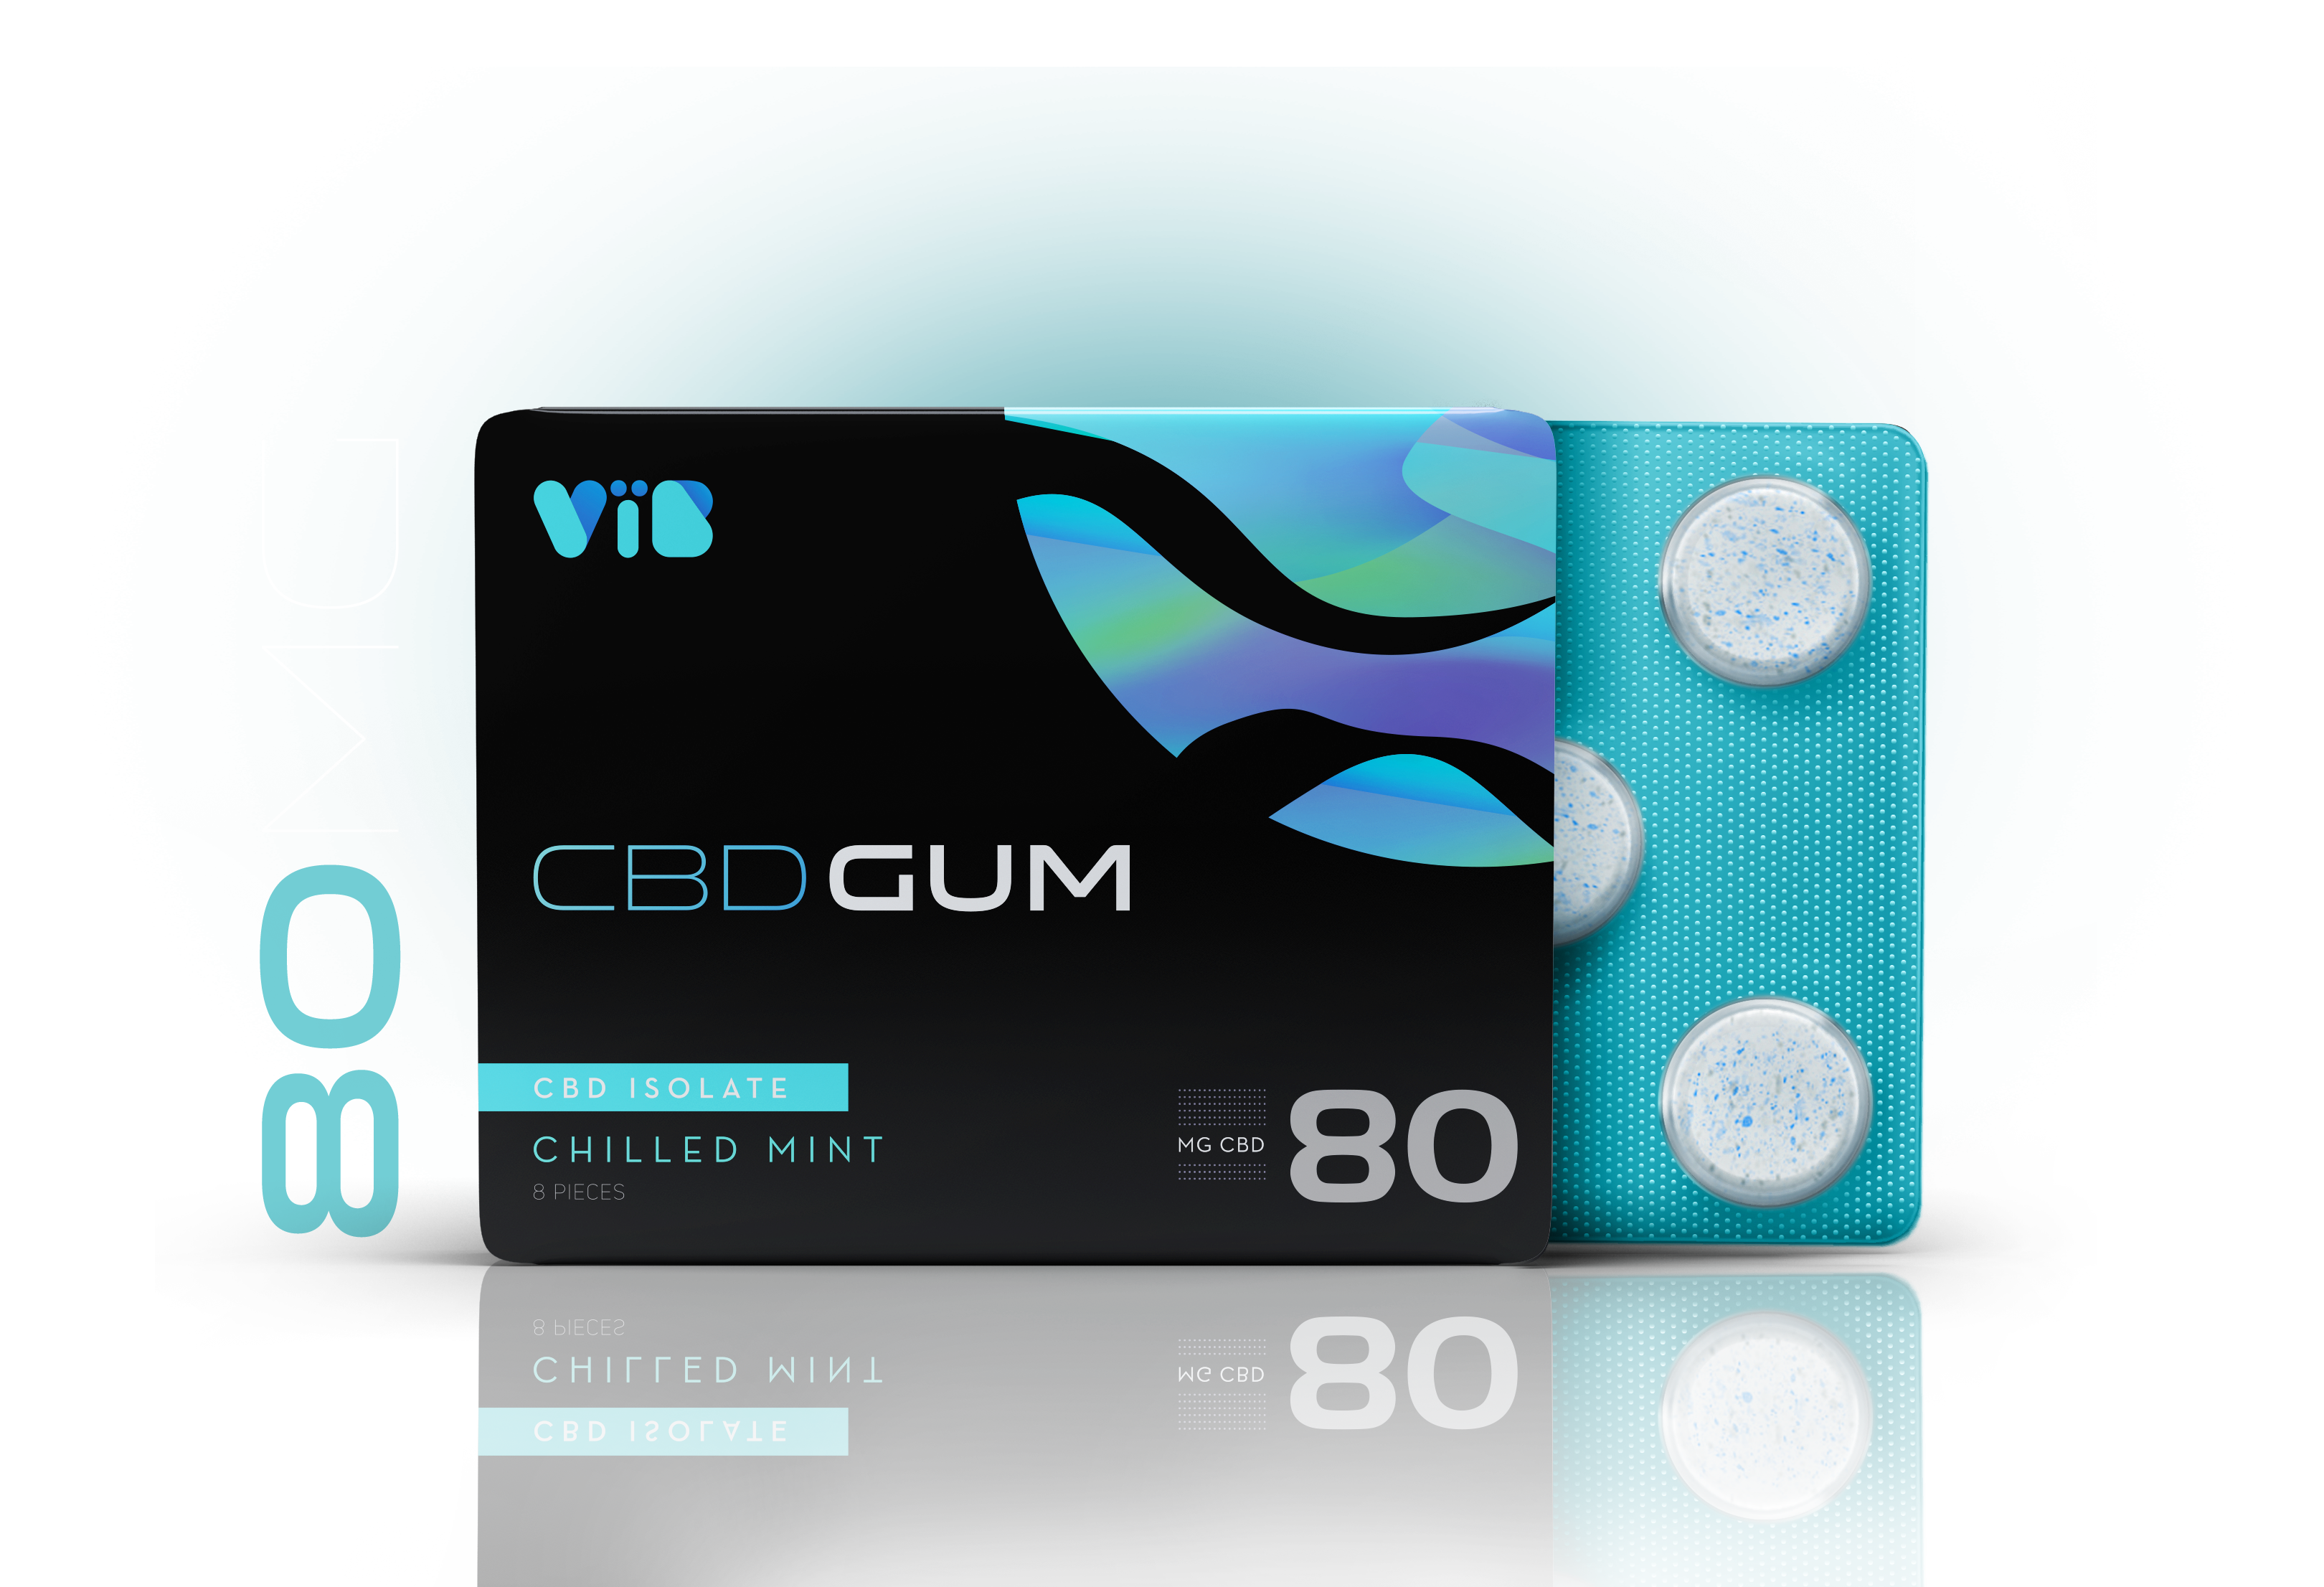 ViB CBD Gum Isolate 10mg